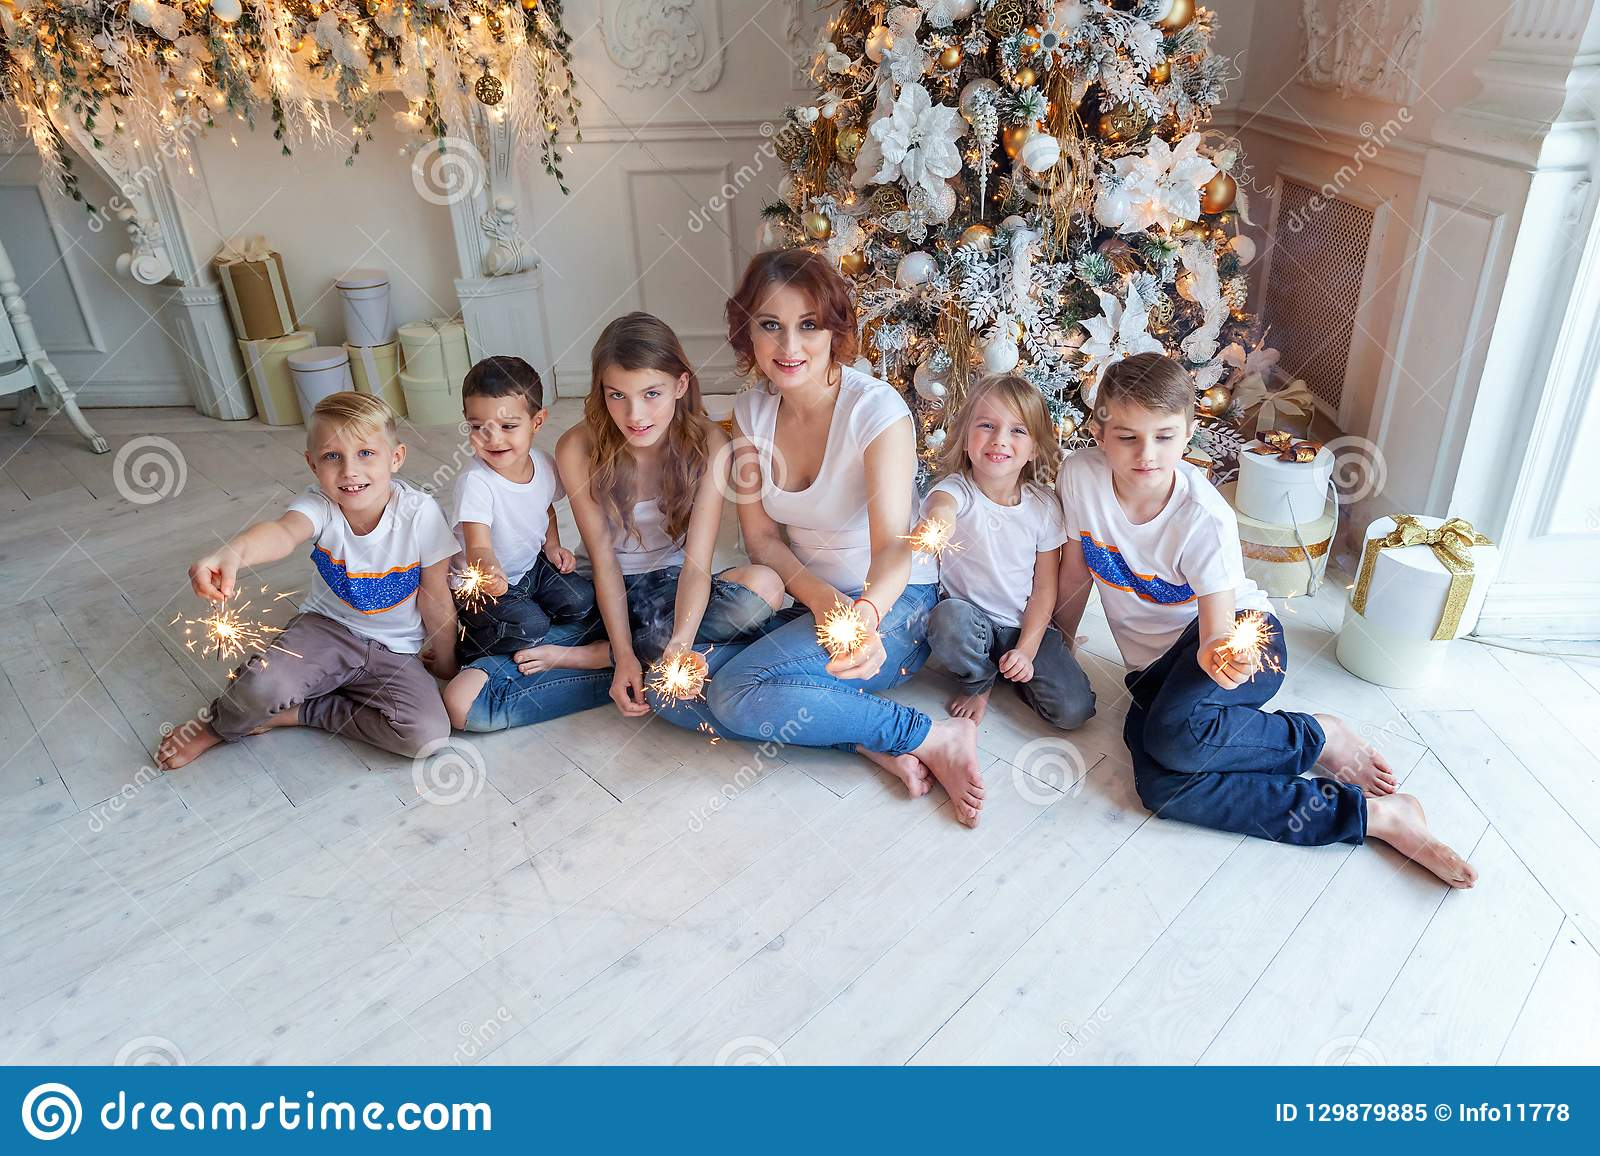 Mother and five children playing sparkler near Christmas tree at home